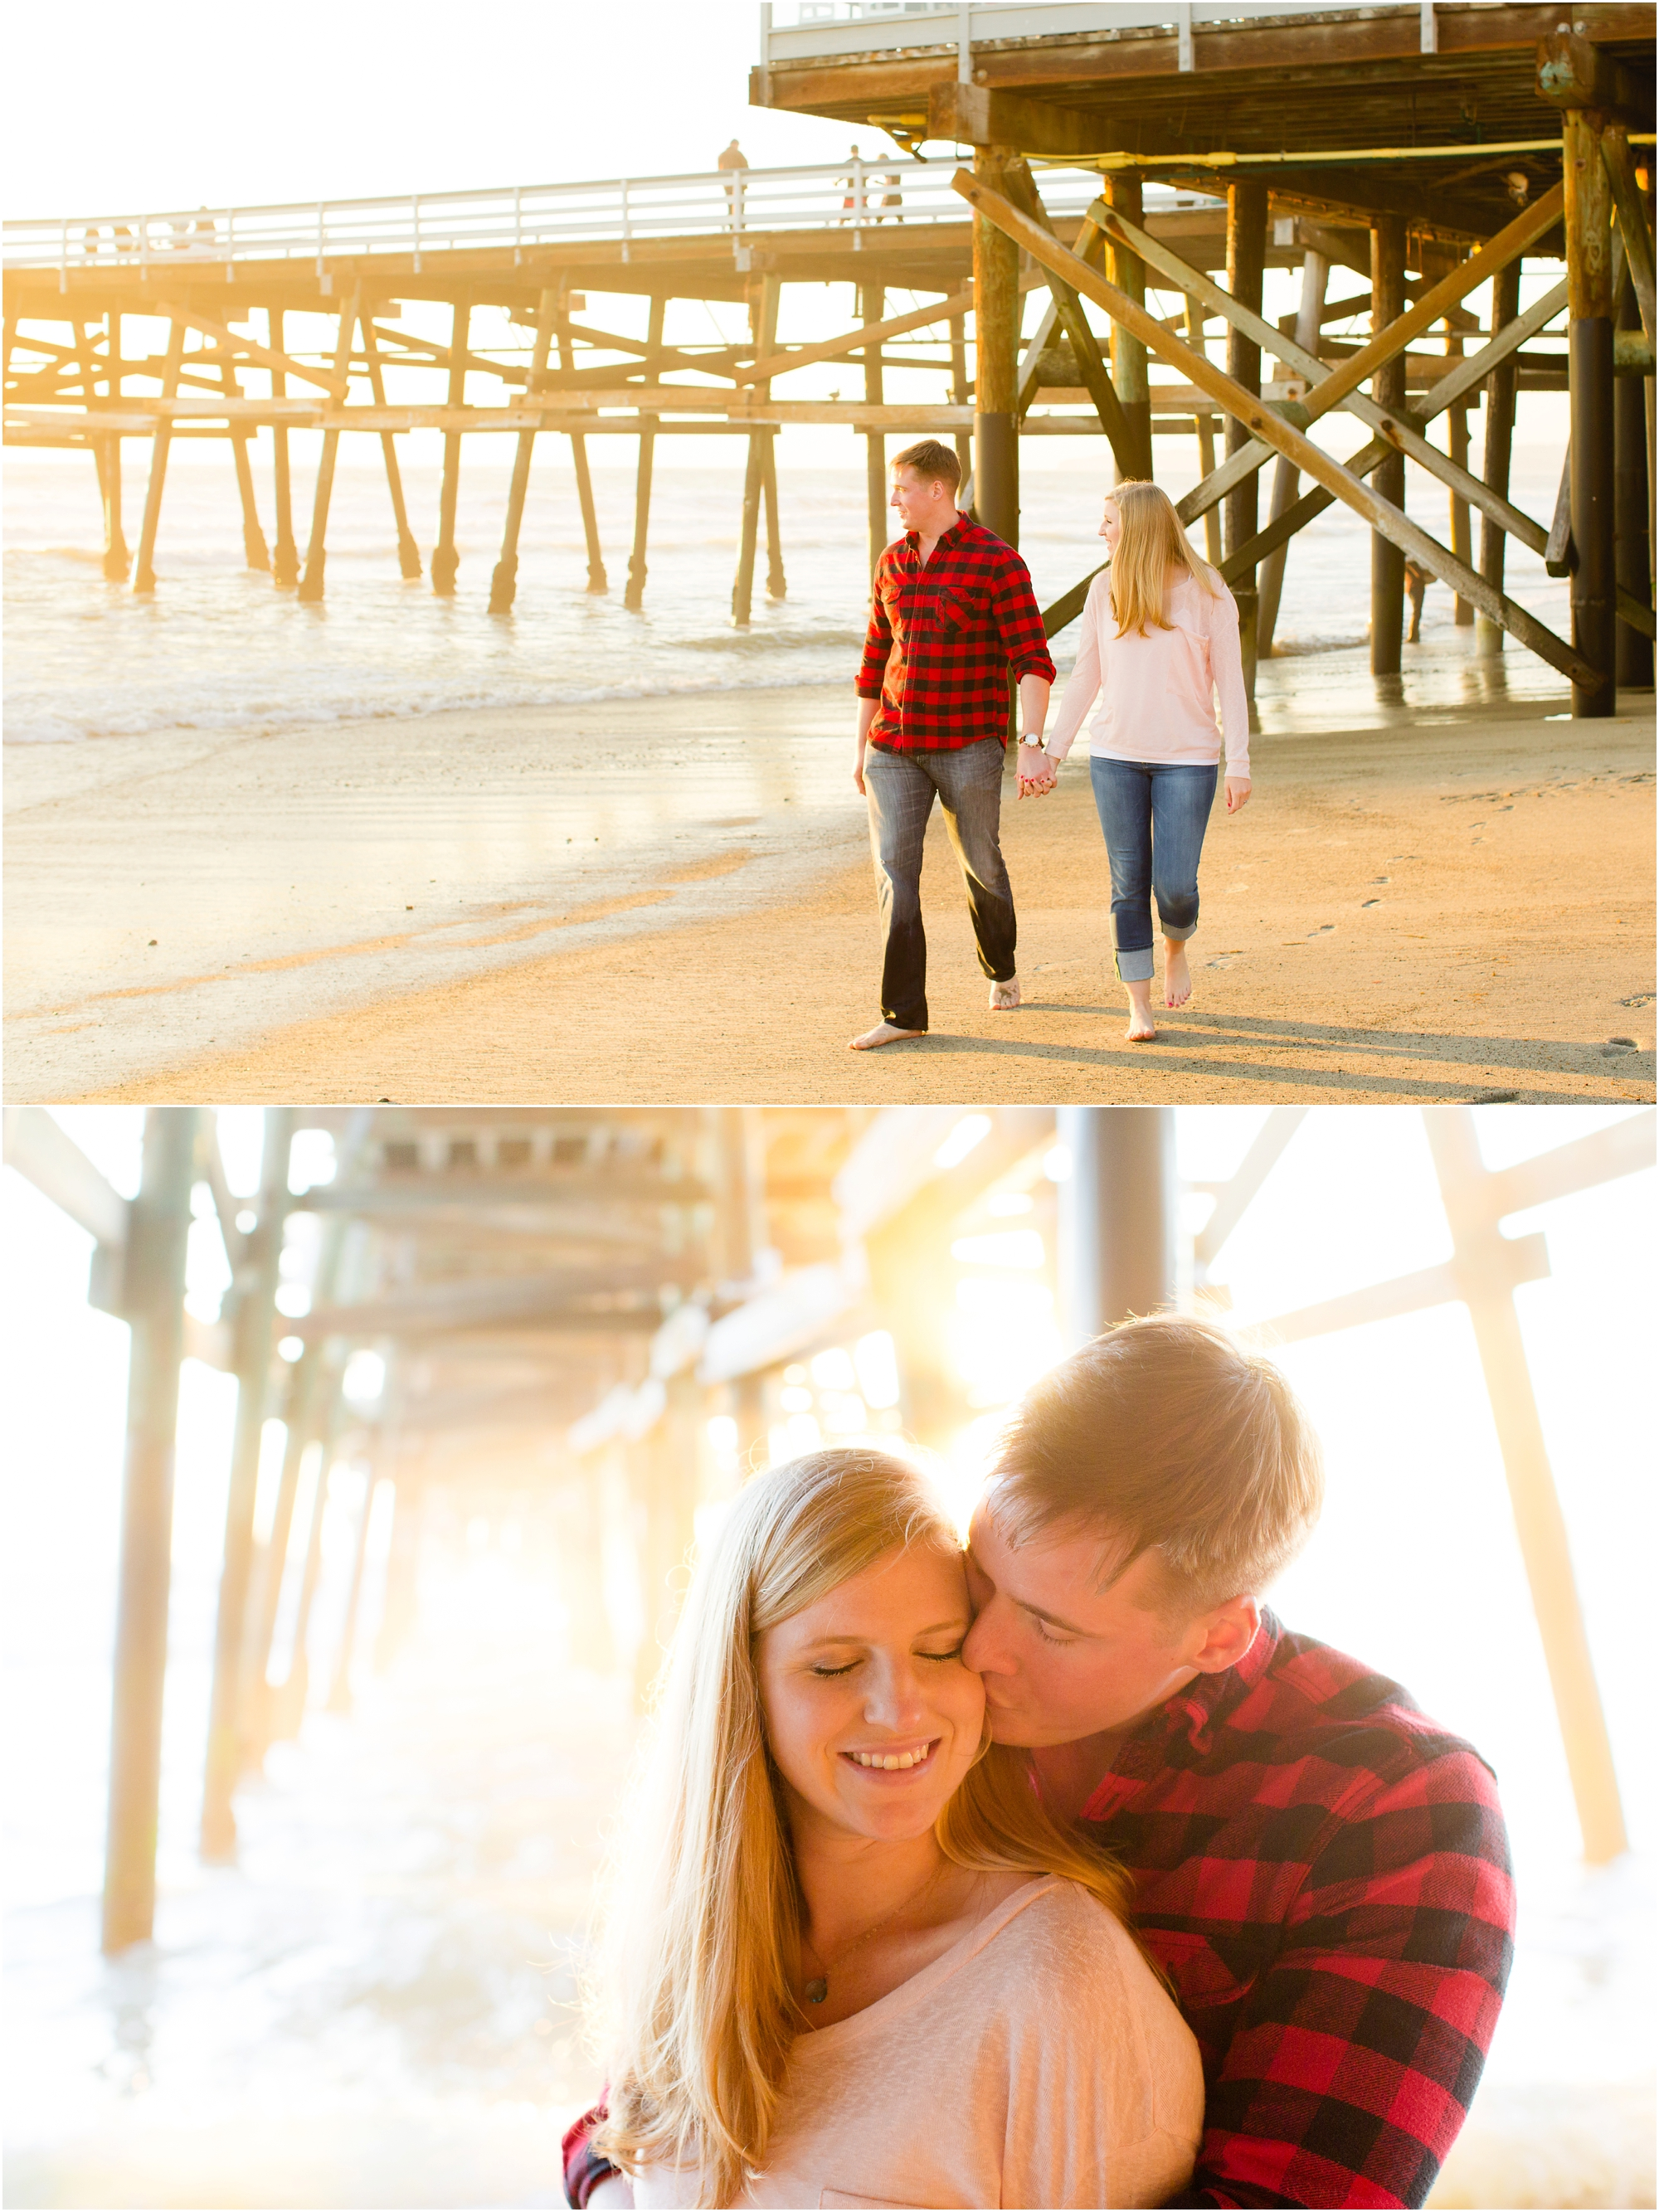 Beach Engagement Session - https://brittneyhannonphotography.com